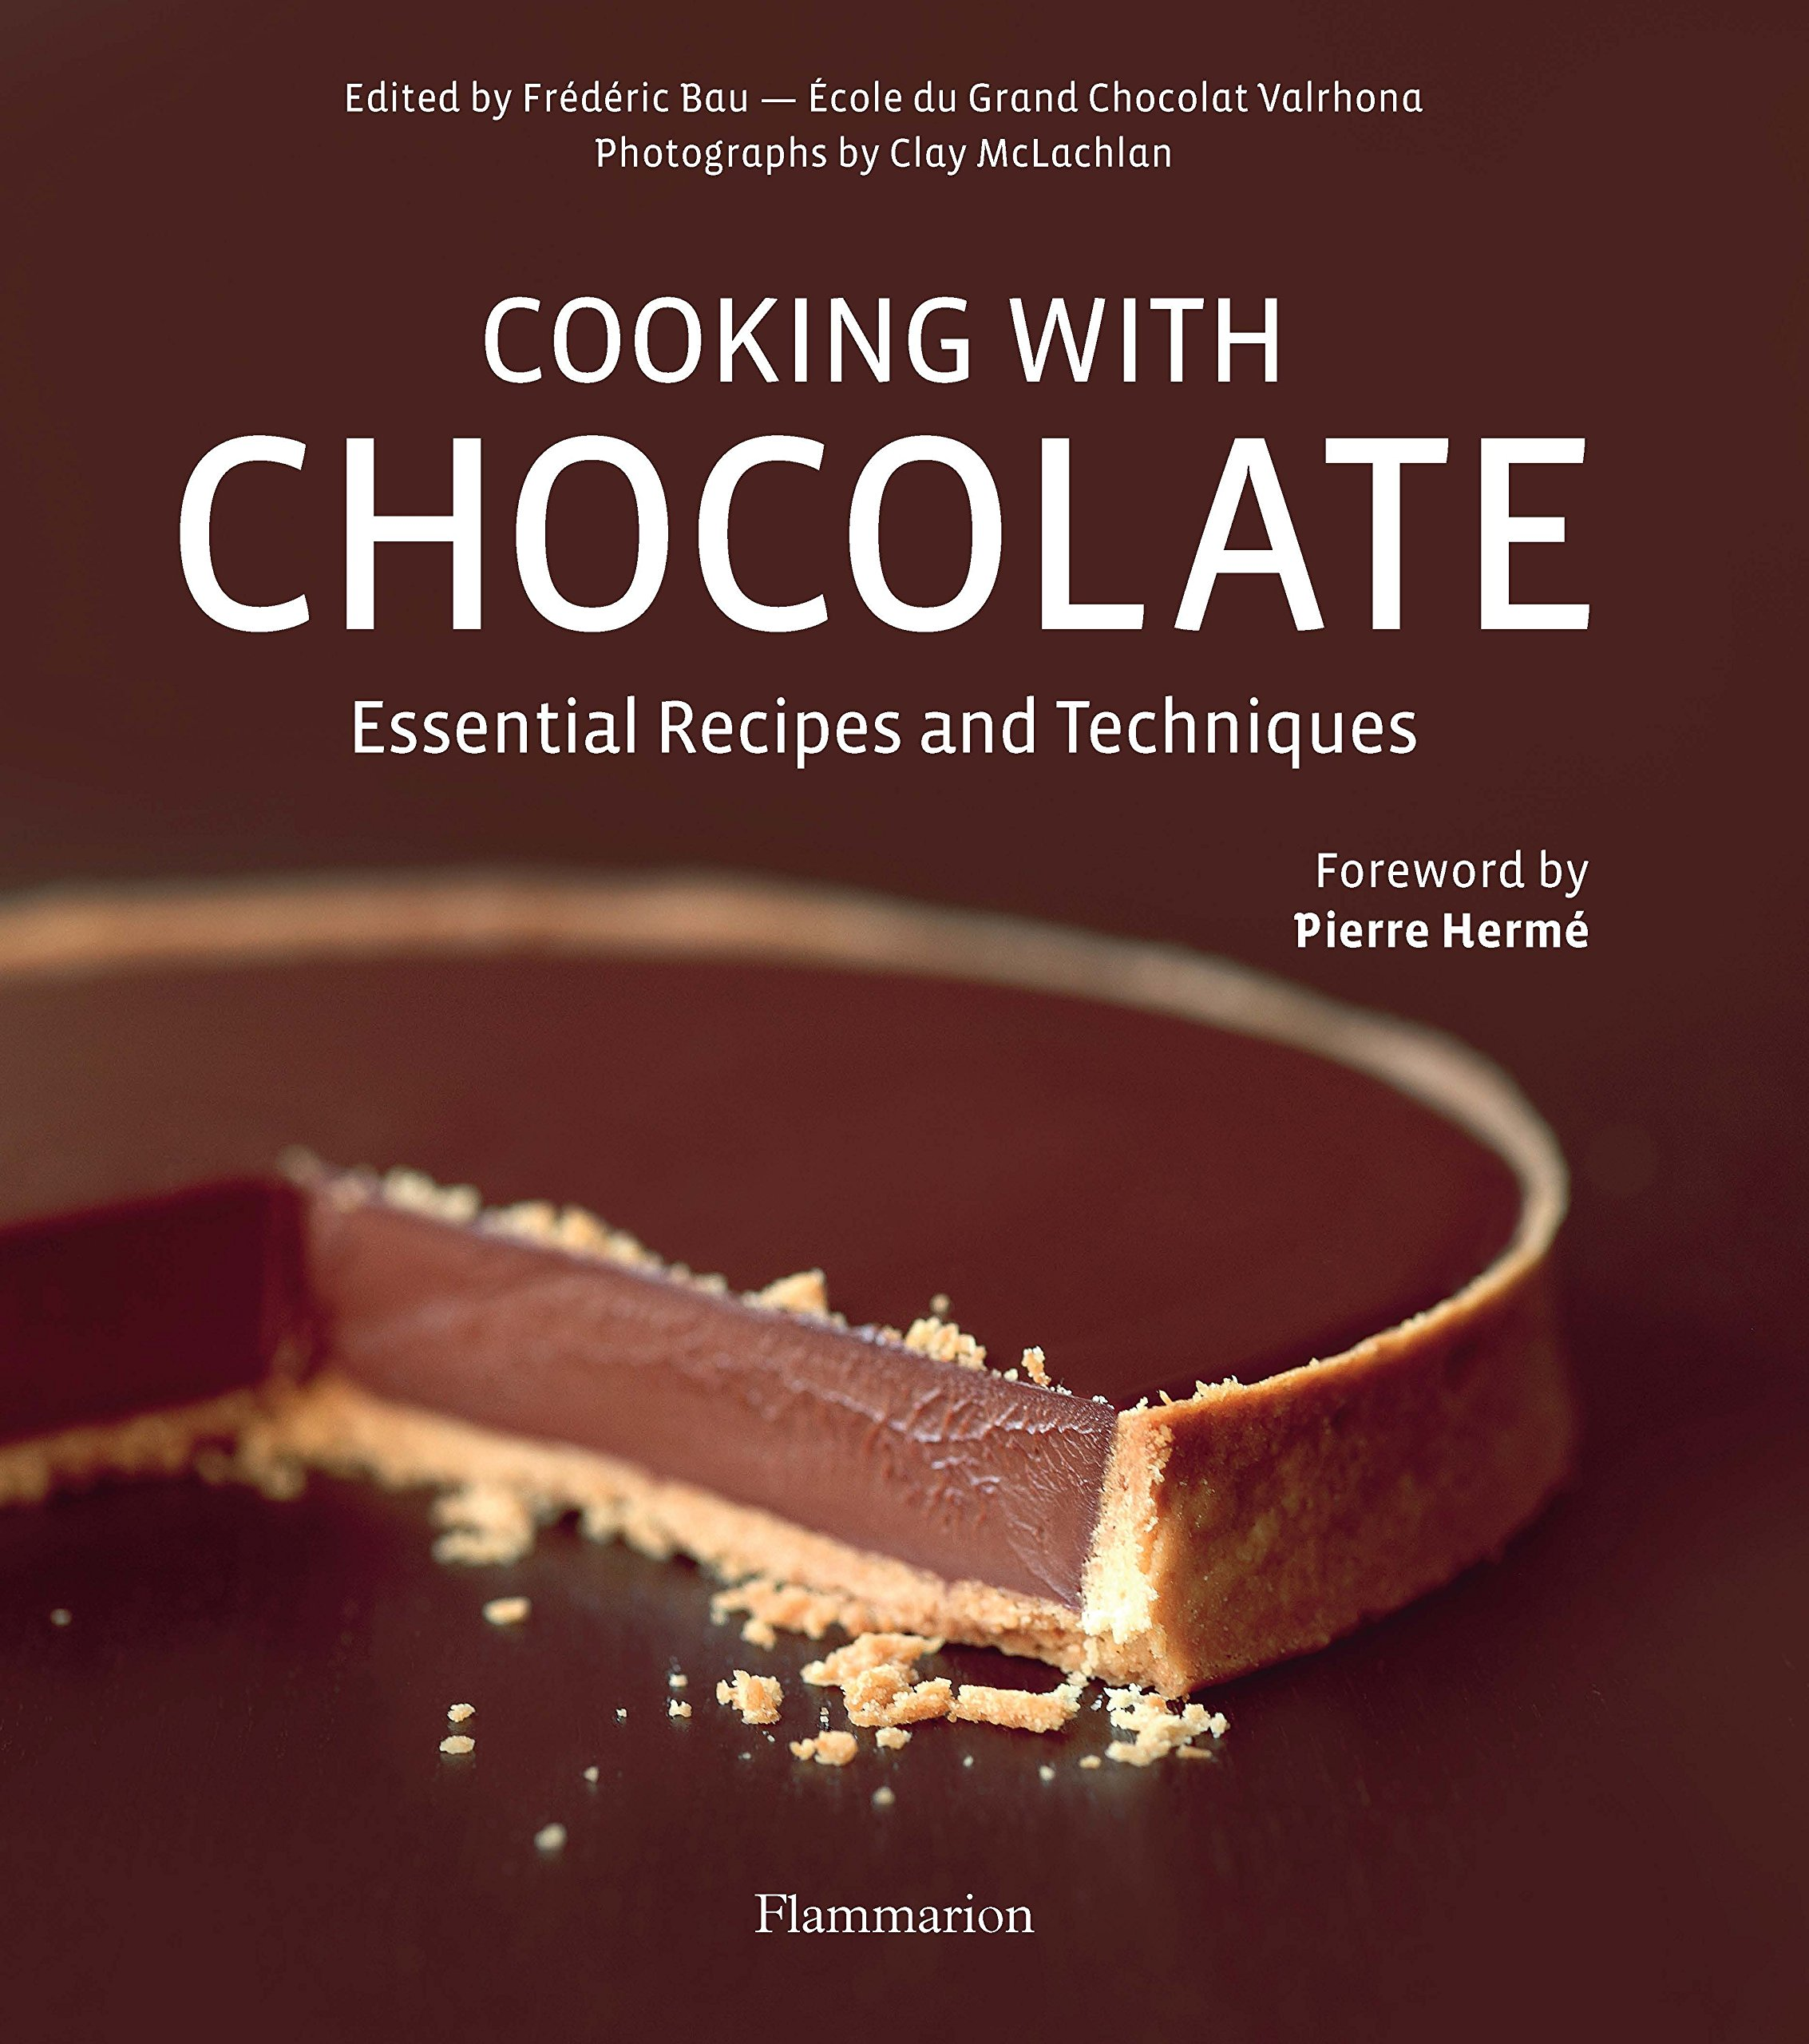 Cooking with Chocolate: Essential Recipes and Techniques by Brand: Flammarion